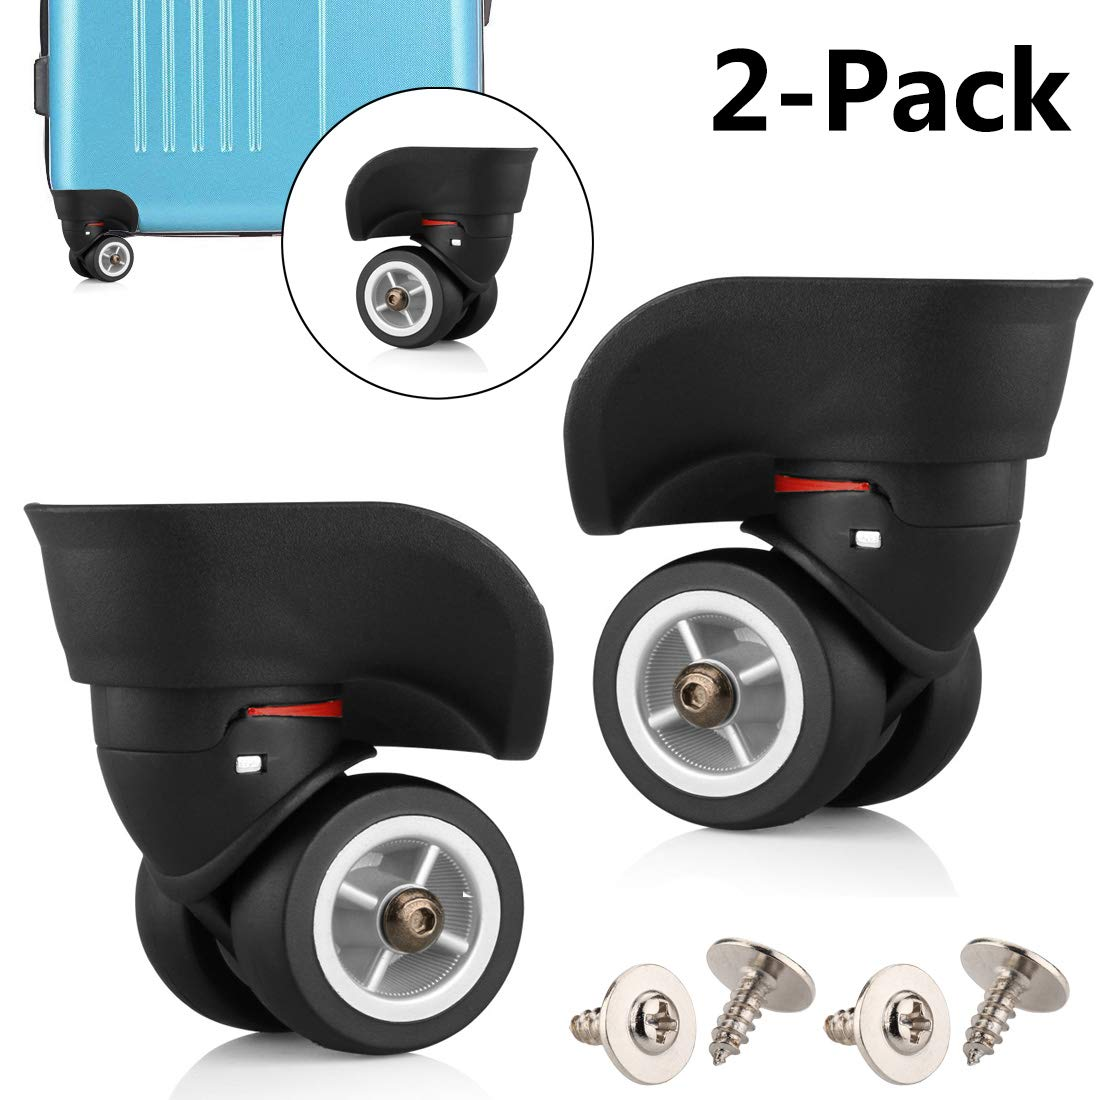 TuhooMall Luggage Wheels Replacement, 360 Degree Swivel Caster Wheel Outdoor Luggage Travel Suitcase Replacement Wheel for Luggage Suitcase Trolley(1 Pair) by TuhooMall